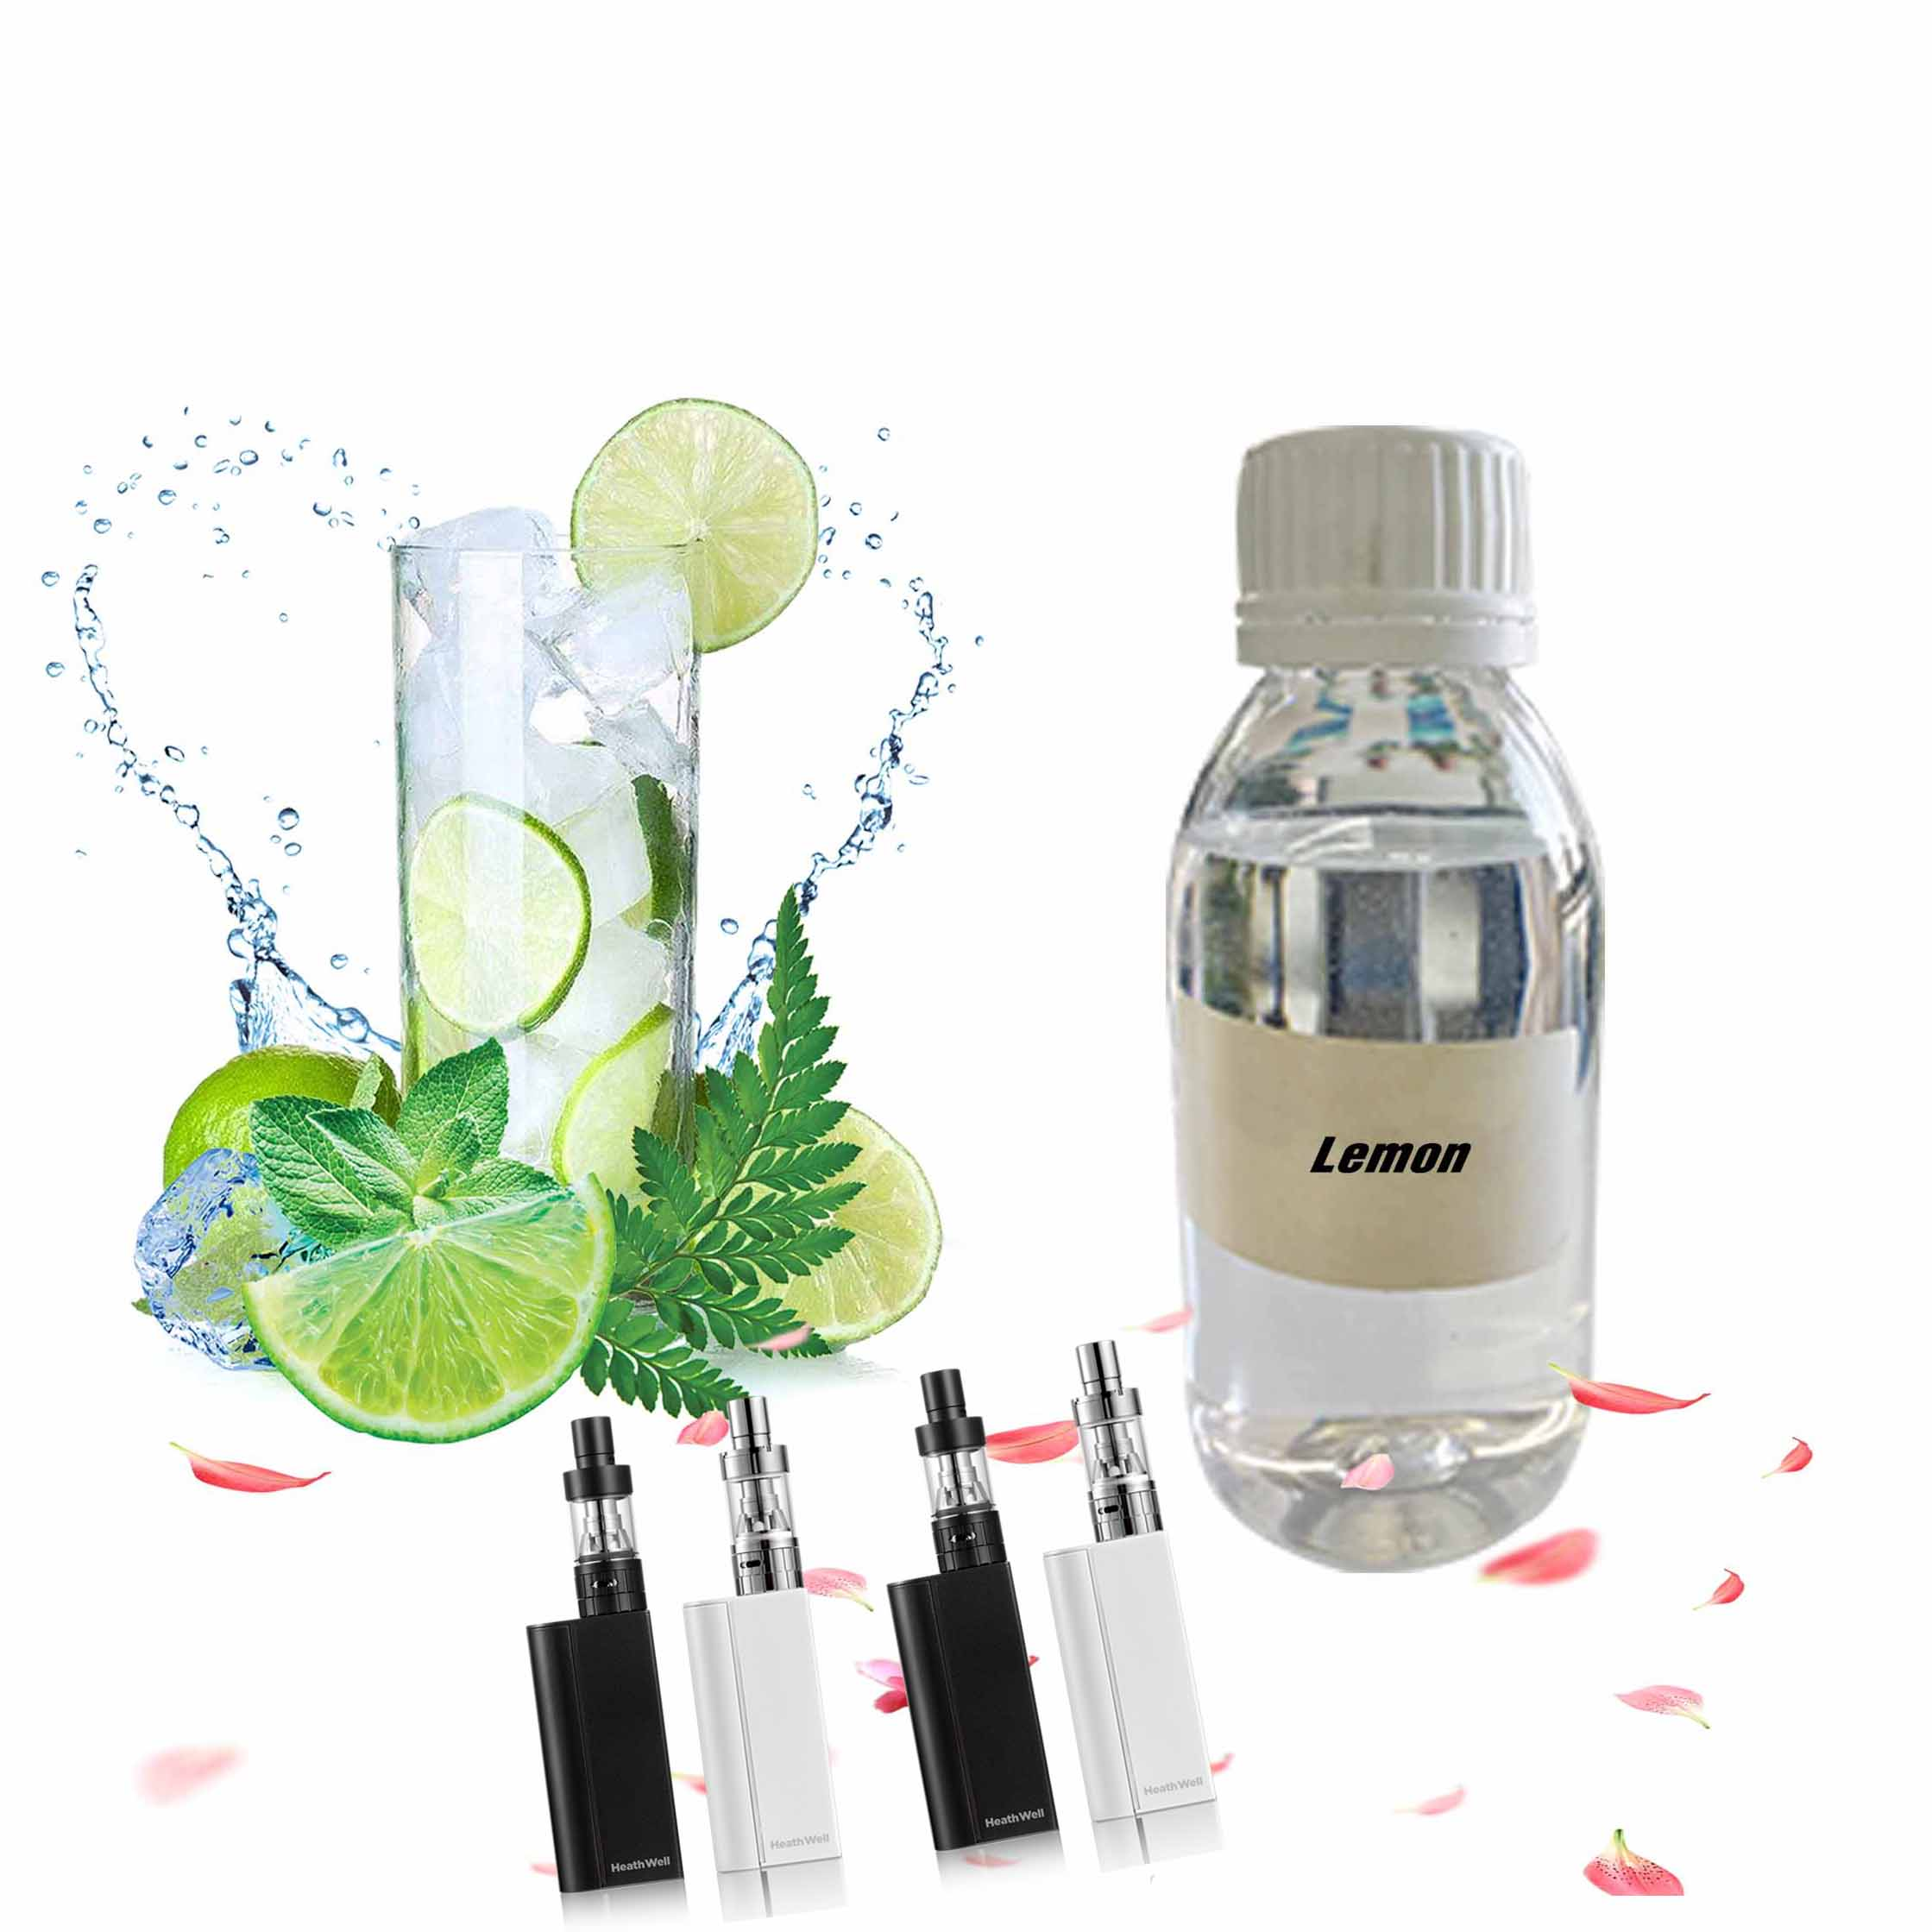 Top Quality and Concentrated Vape juice Flavor Ice Cream Flavor for Making e-liquid